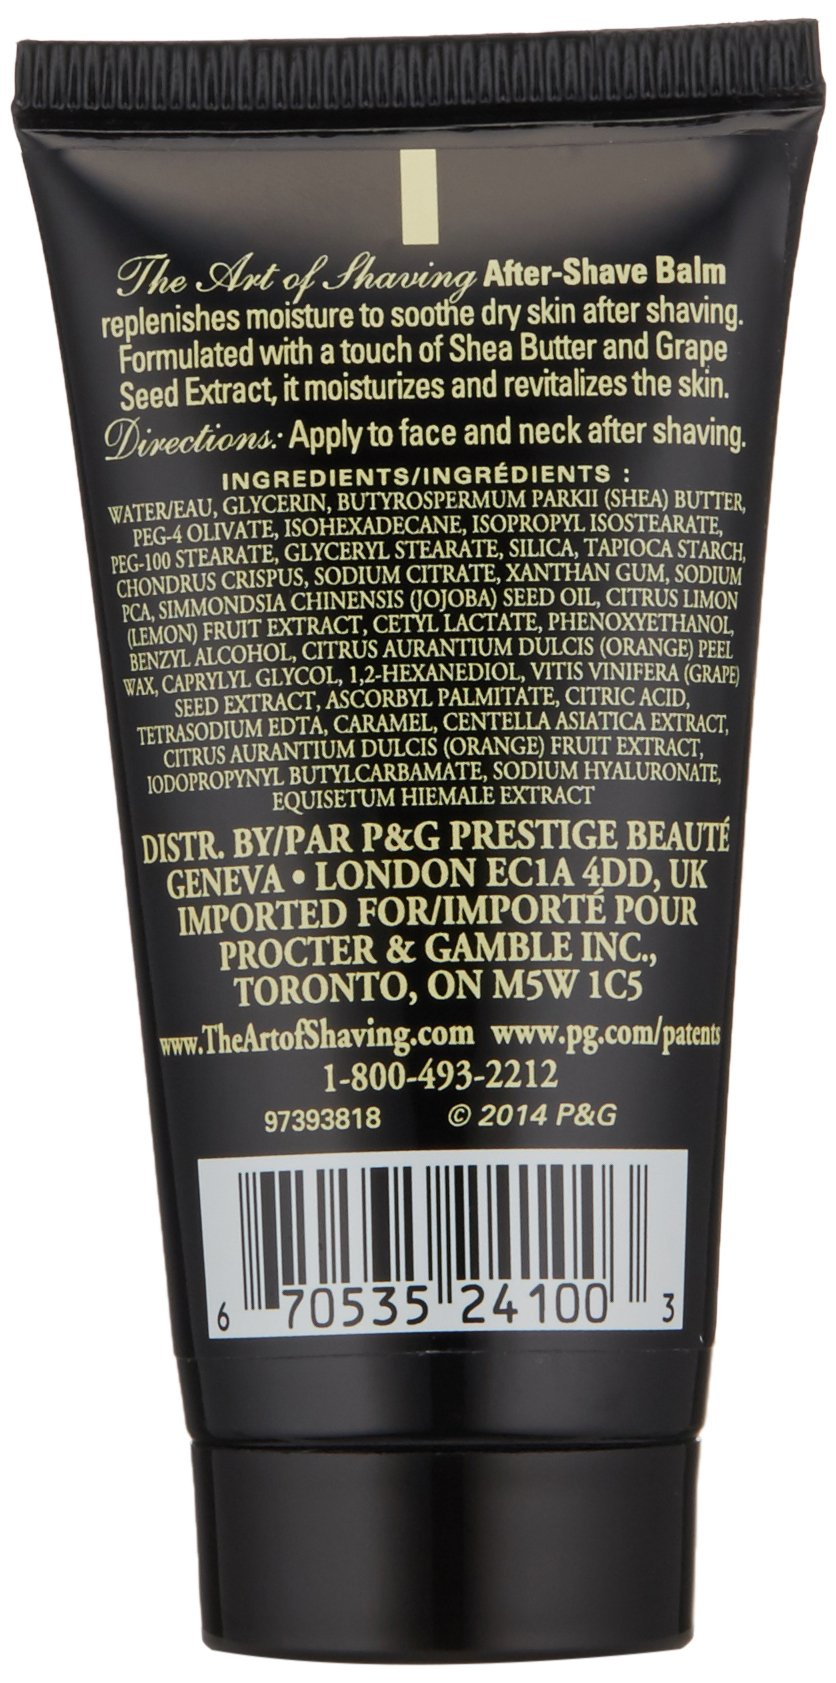 The Art of Shaving After-Shave Balm, Unscented, 1 oz by The Art of Shaving (Image #2)